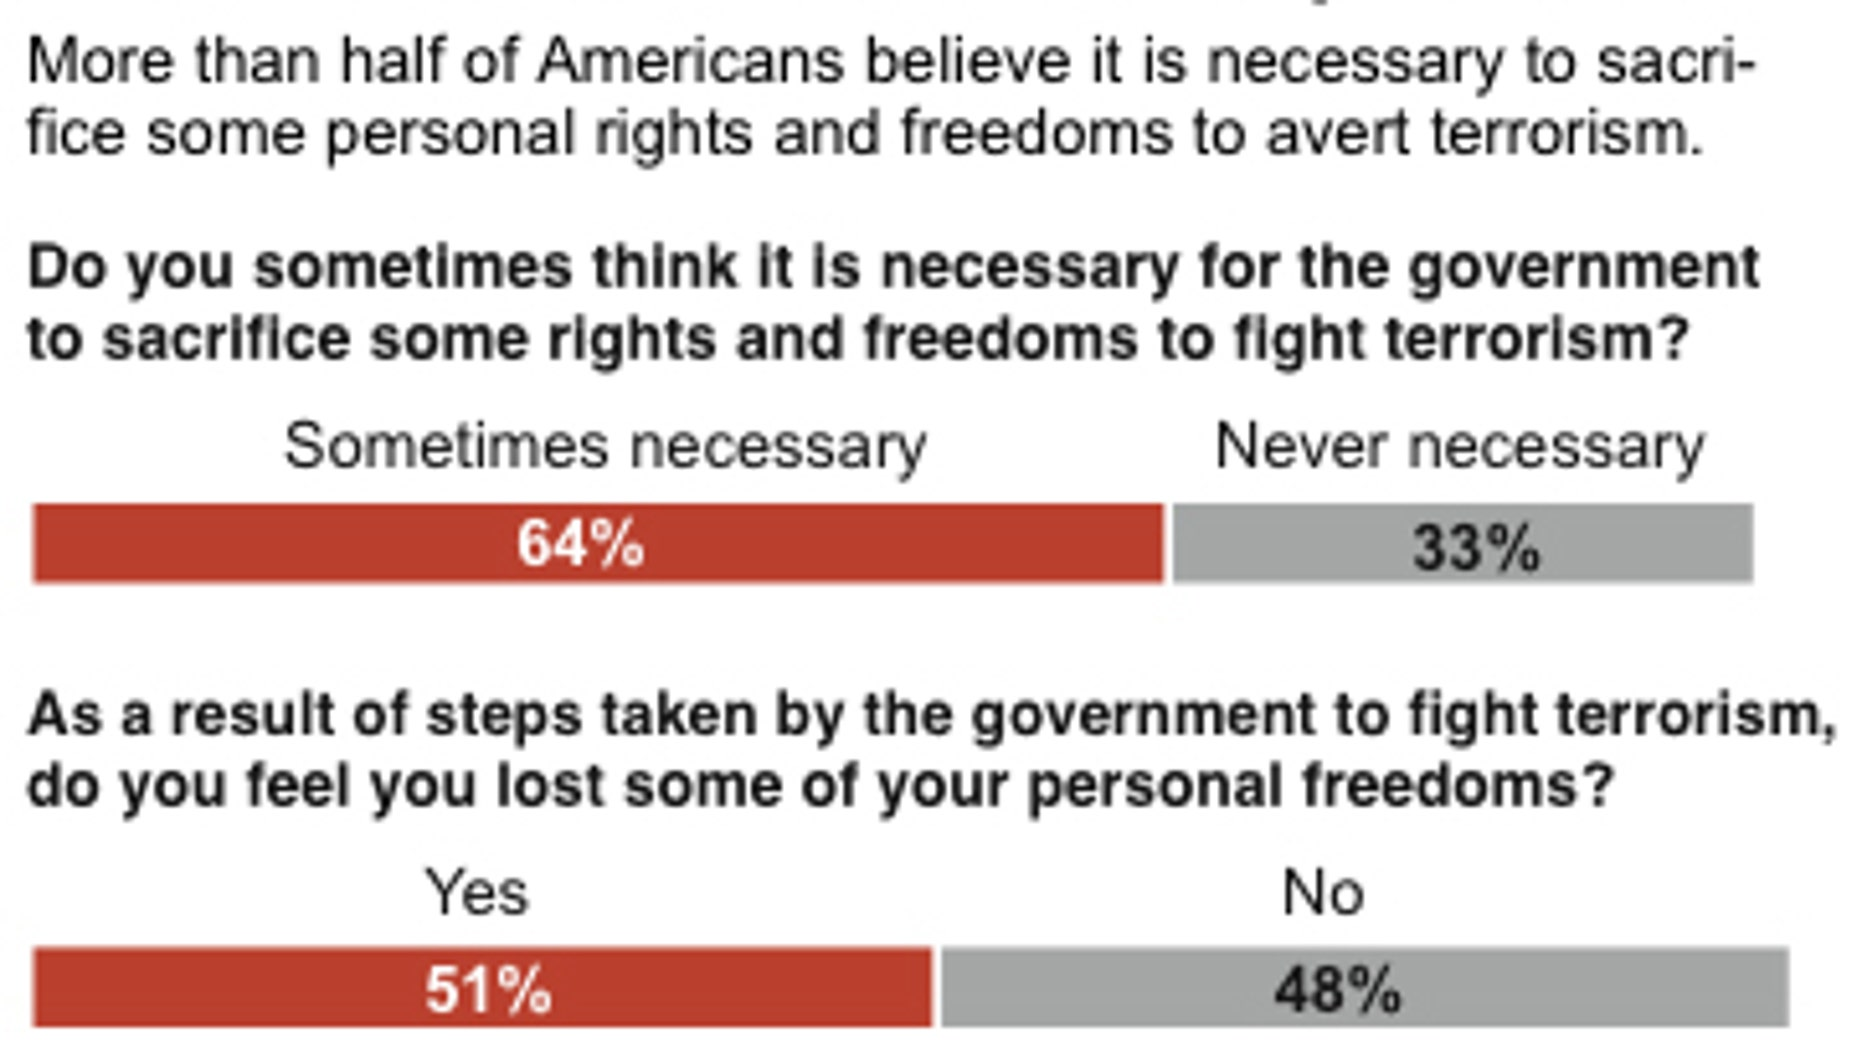 Poll shows how respondents feel about civil liberties and securities